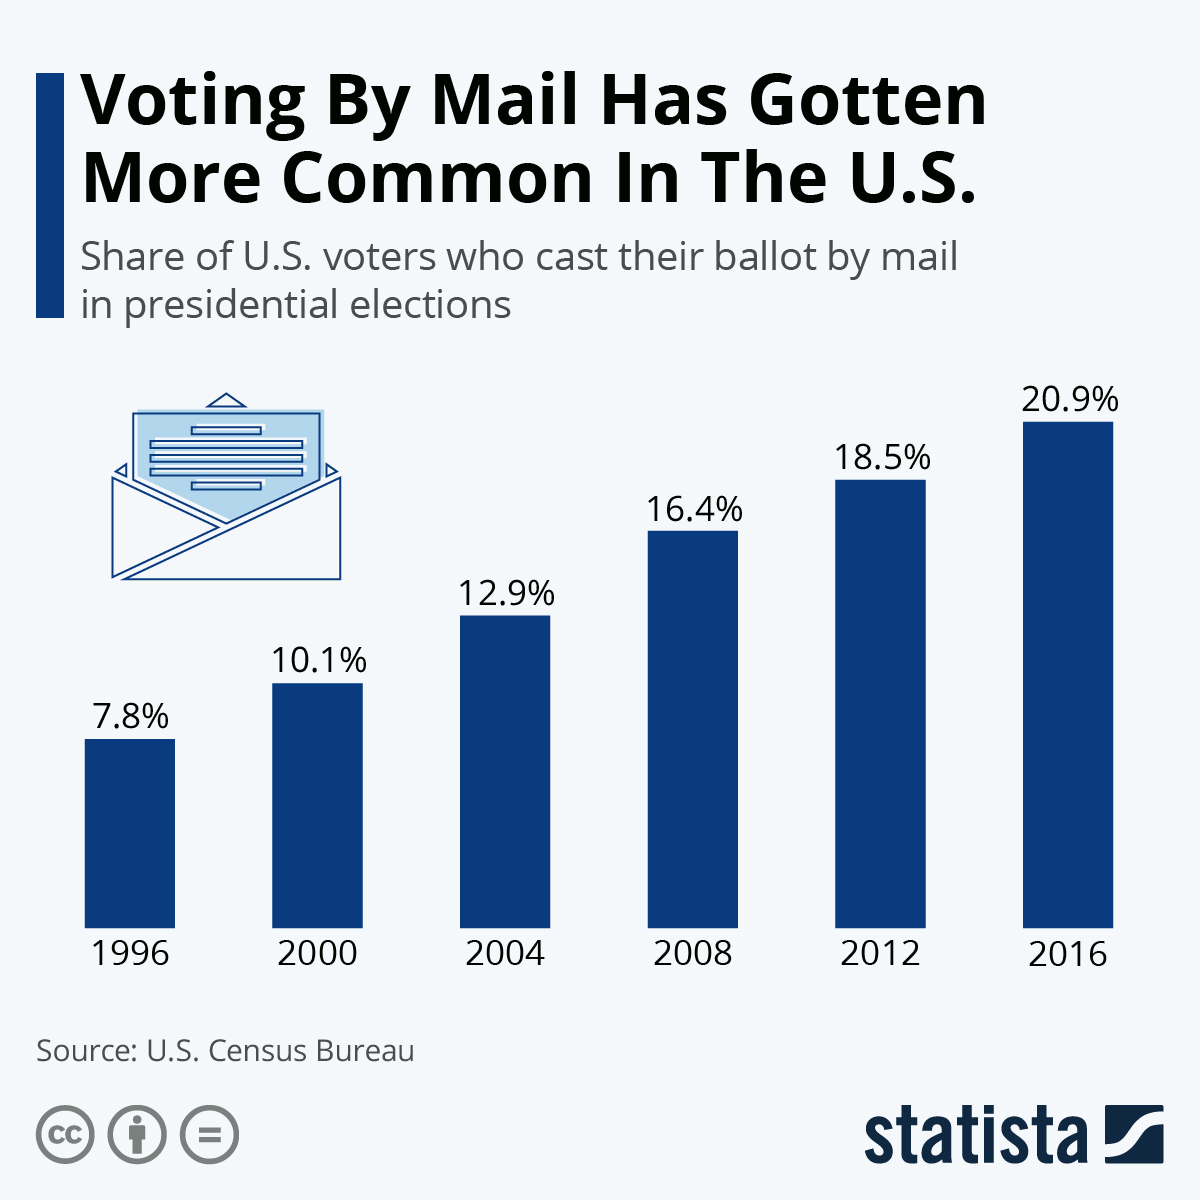 Voting By Mail Has Gotten More Common In The U.S. #Infographic